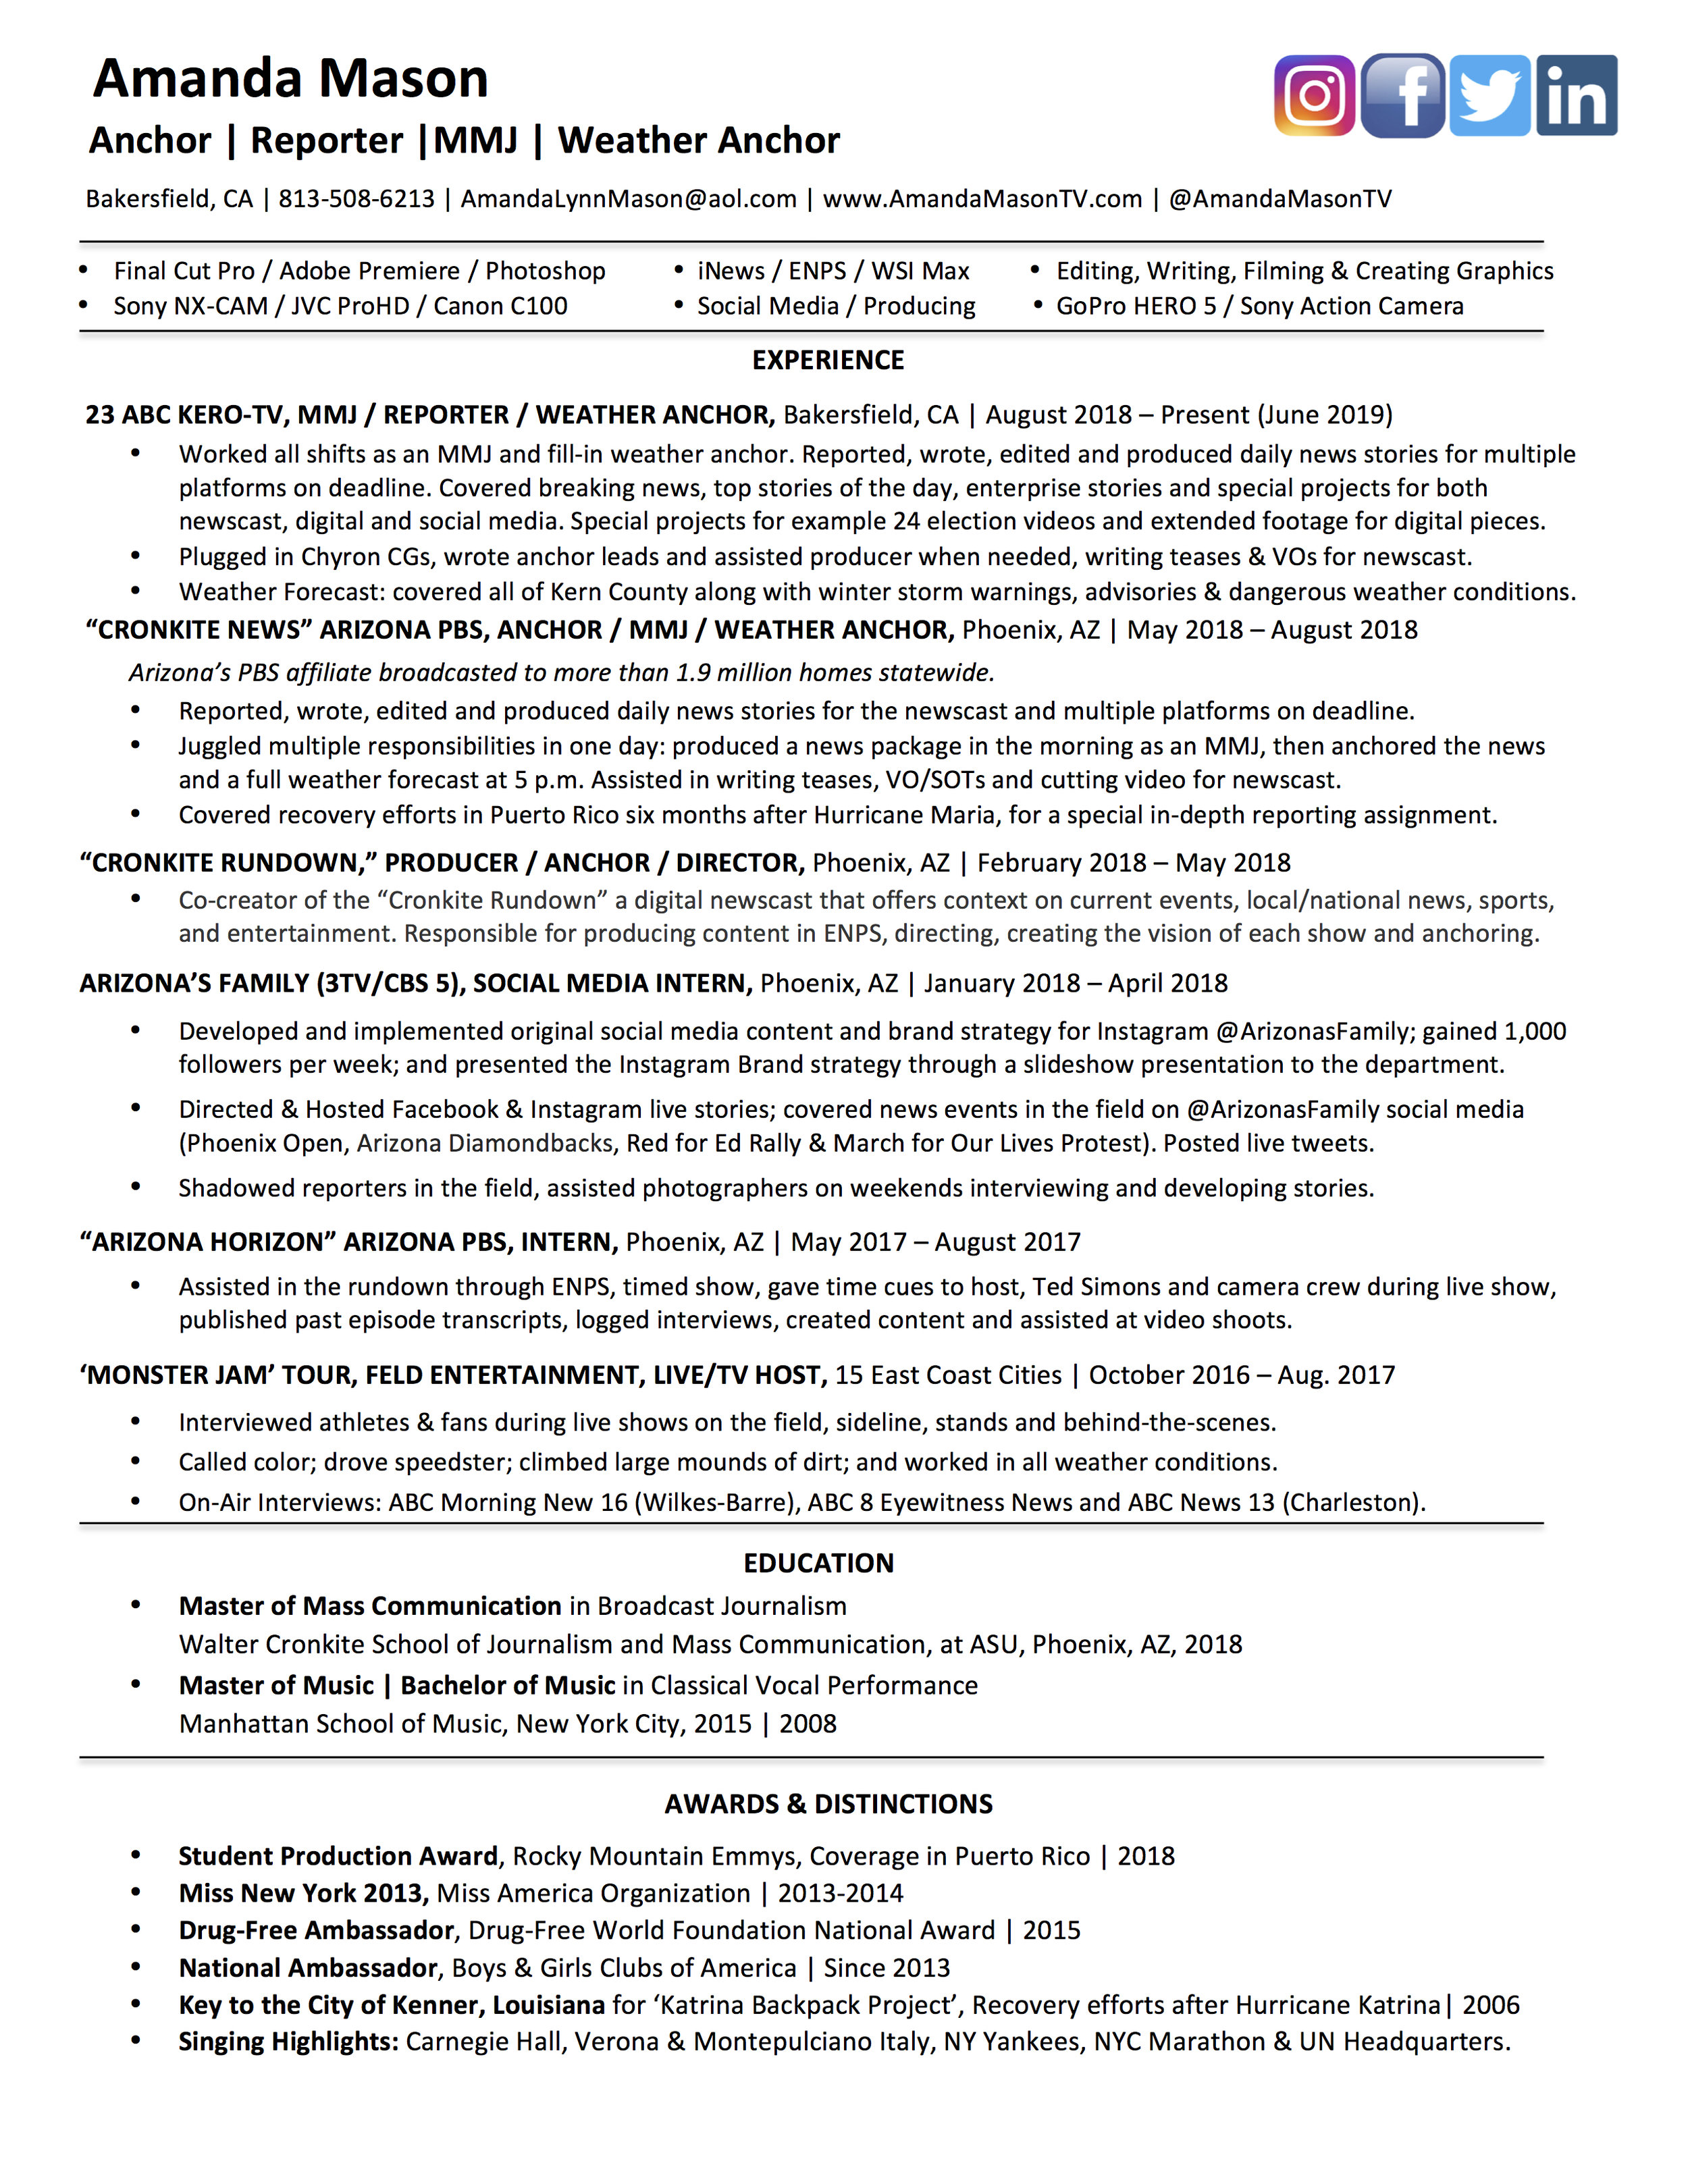 AmandaMASON2019 Resume Feb.  FINAL.jpg